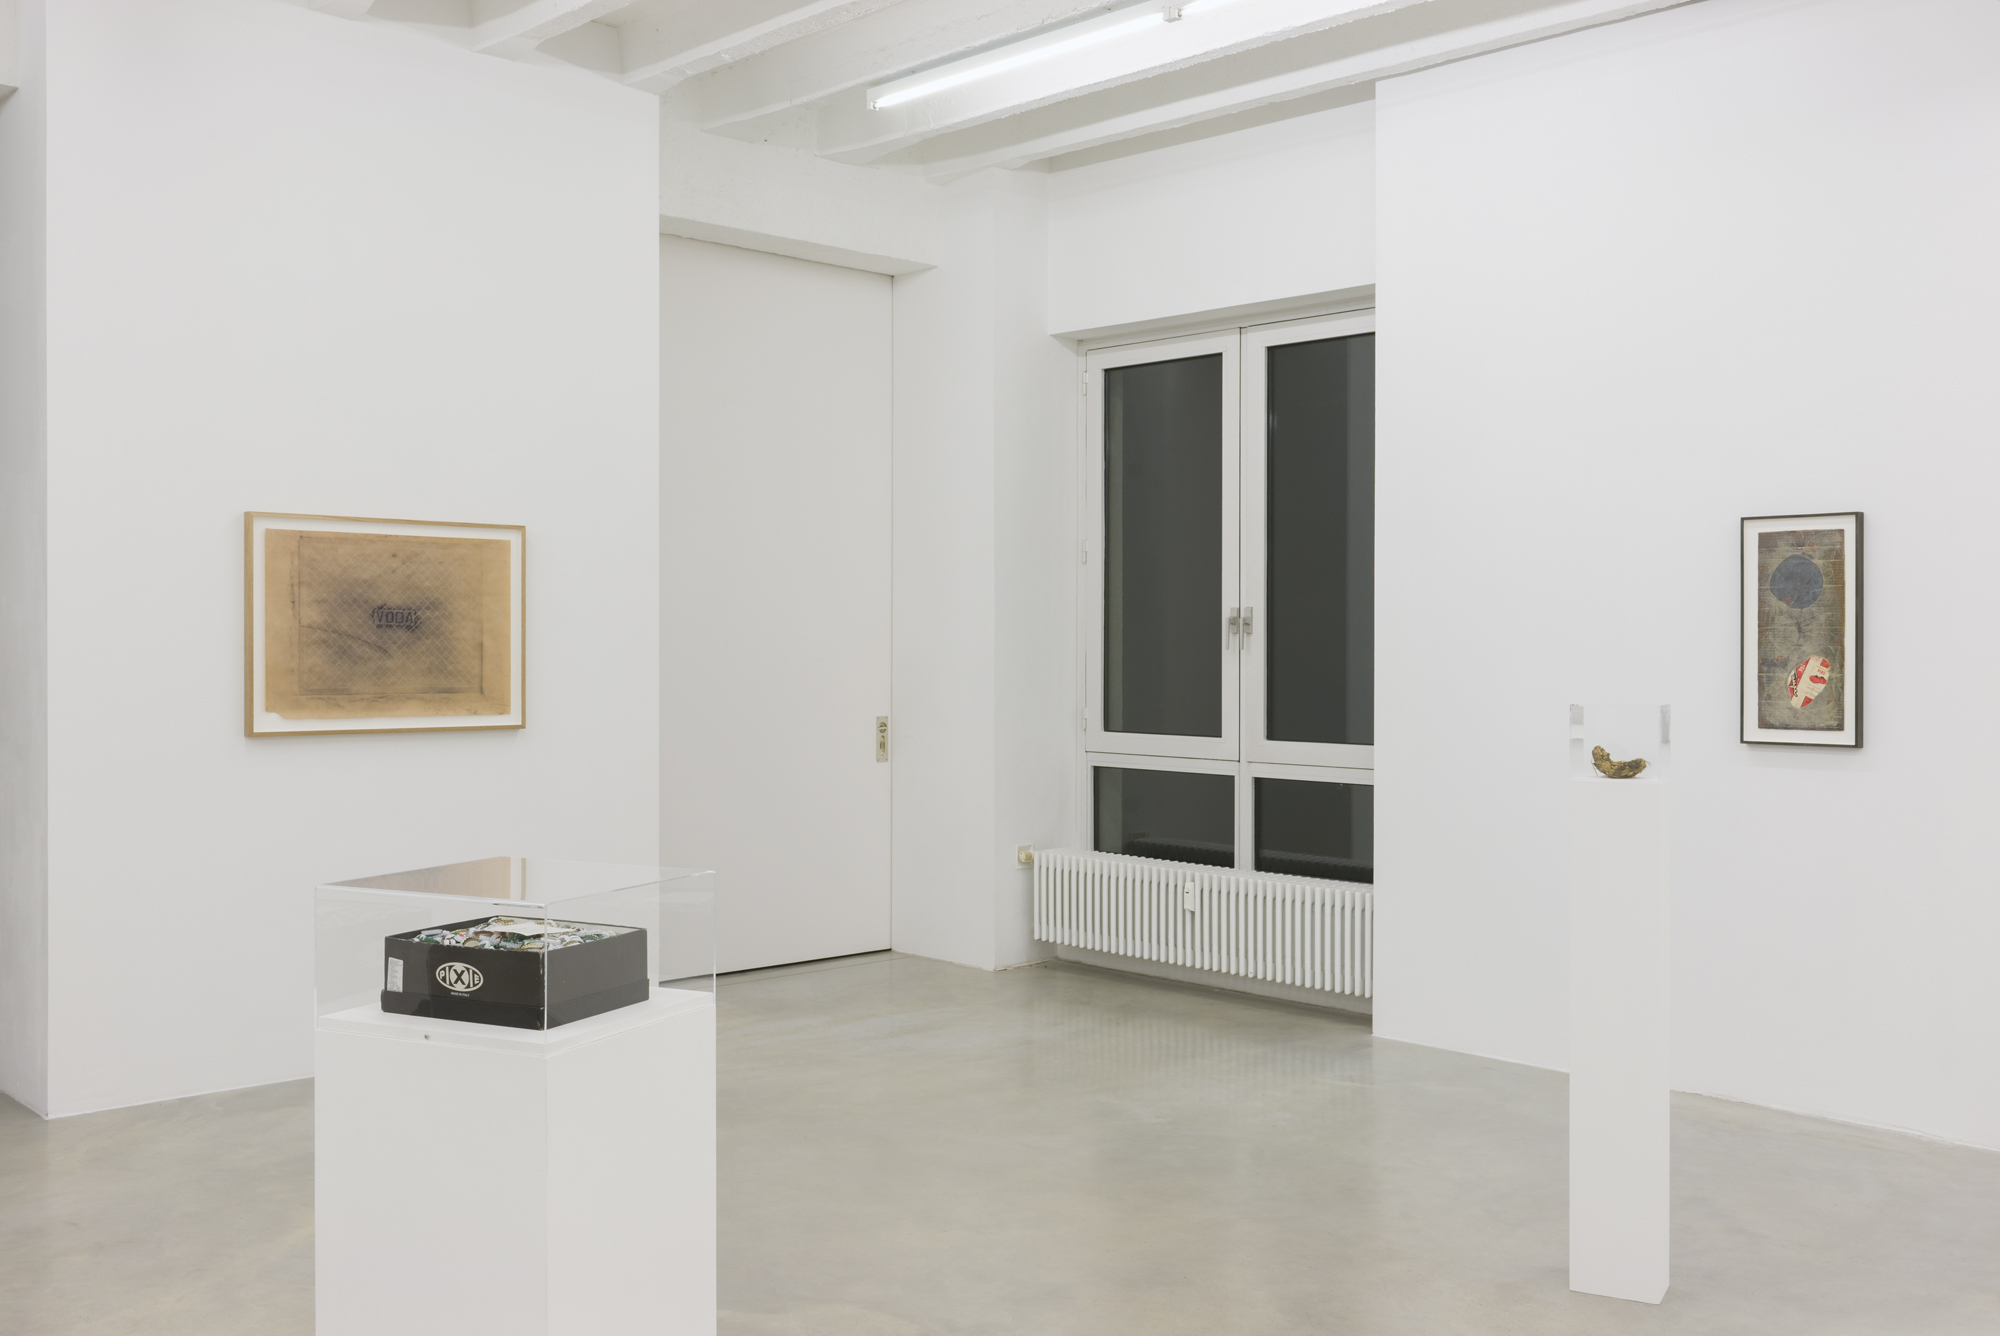 Exhibition view, Galerija Gregor Podnar, Berlin, 2016. Photo: Marcus Schneider